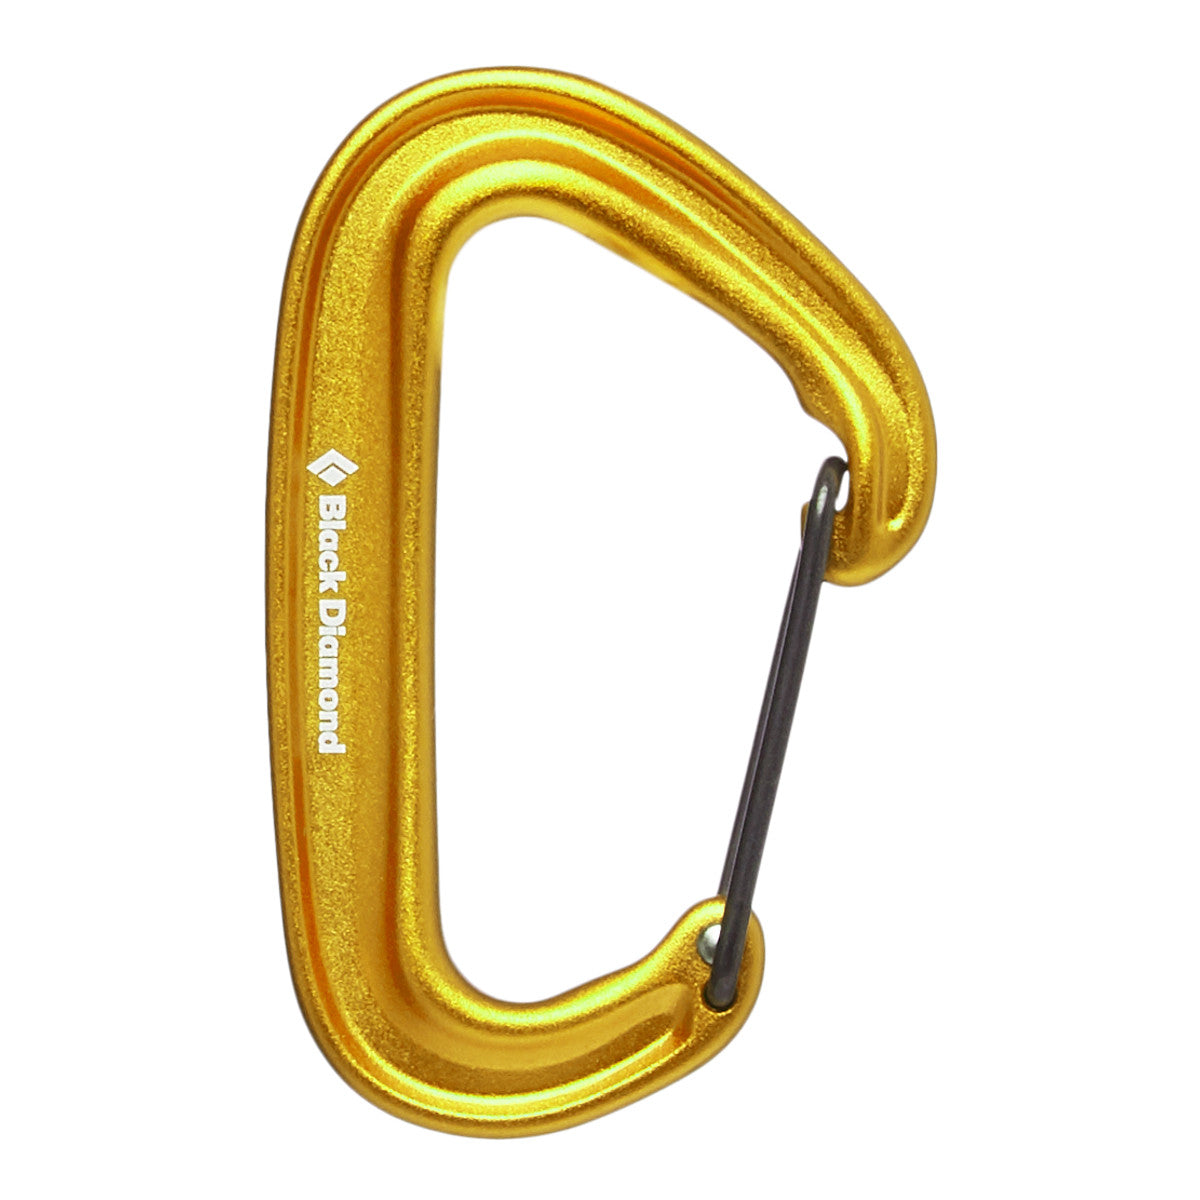 Black Diamond Miniwire Carabiner in Yellow